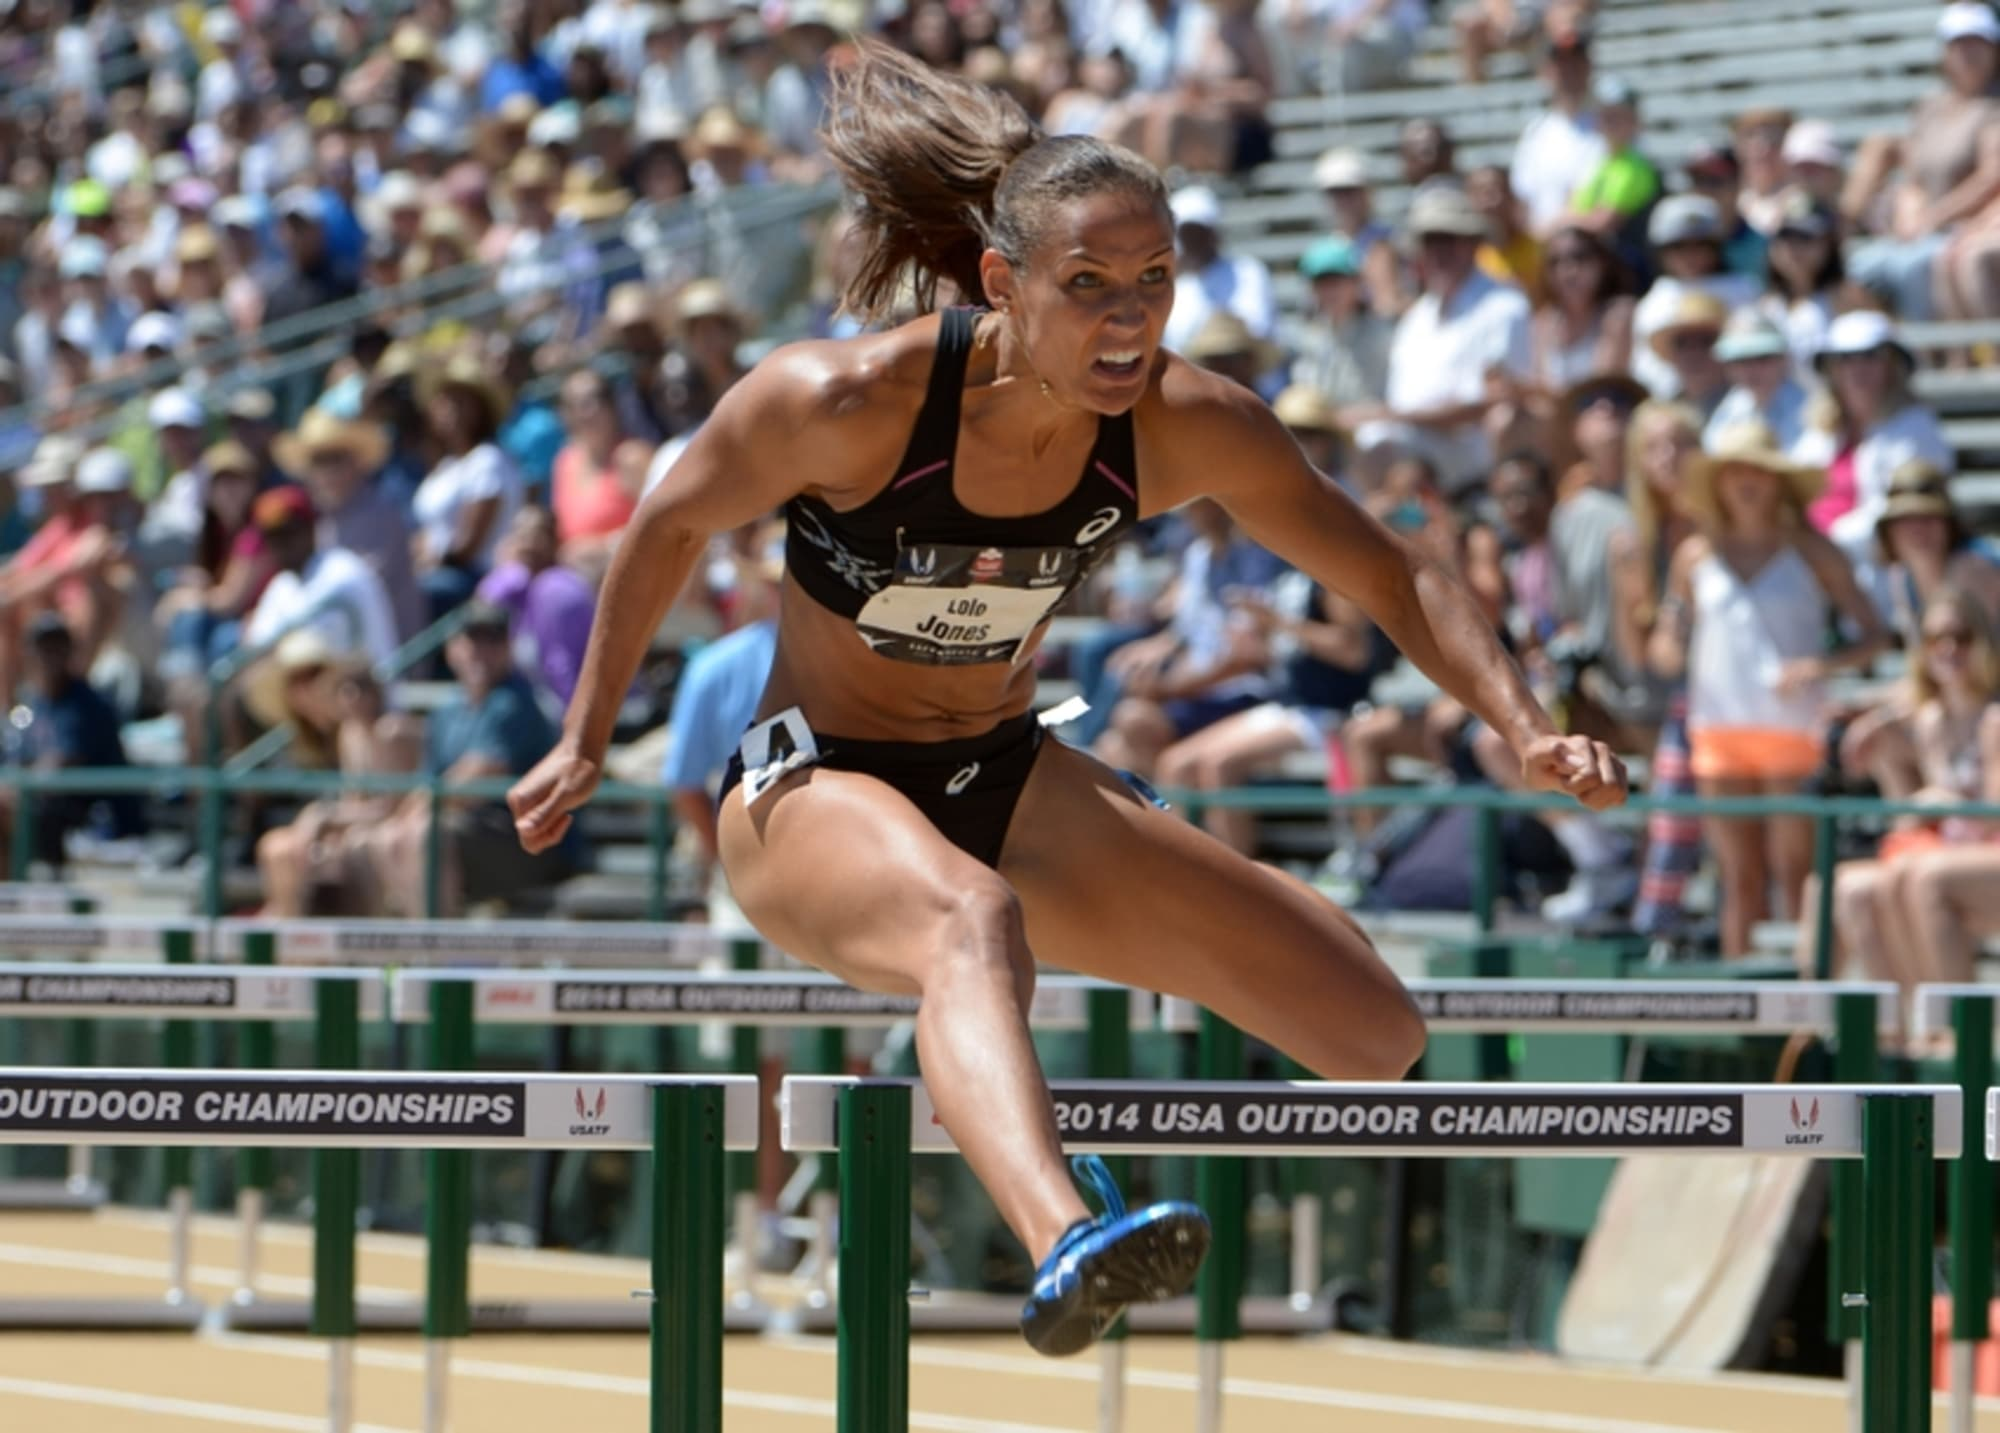 Lolo Jones sets return to track, bobsled after latest surgery - OlympicTalk   NBC Sports